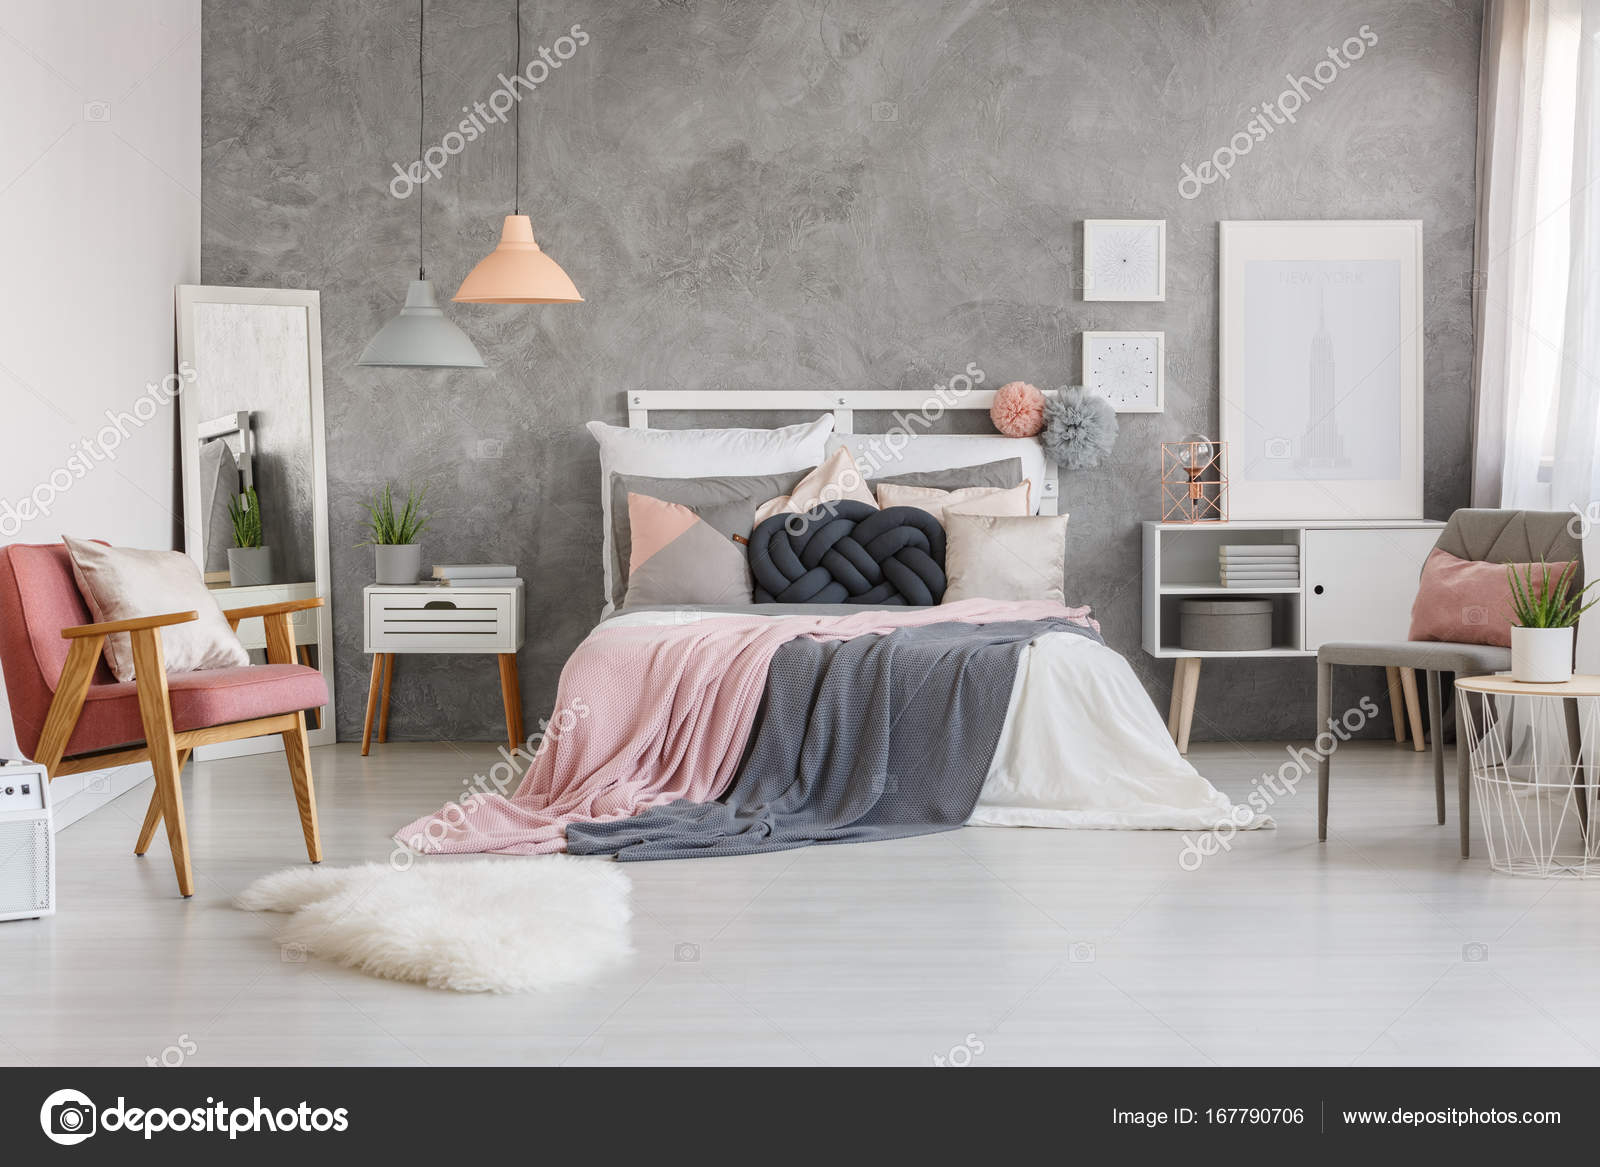 Adorabile camera da letto con rosa cipria — Foto Stock ...